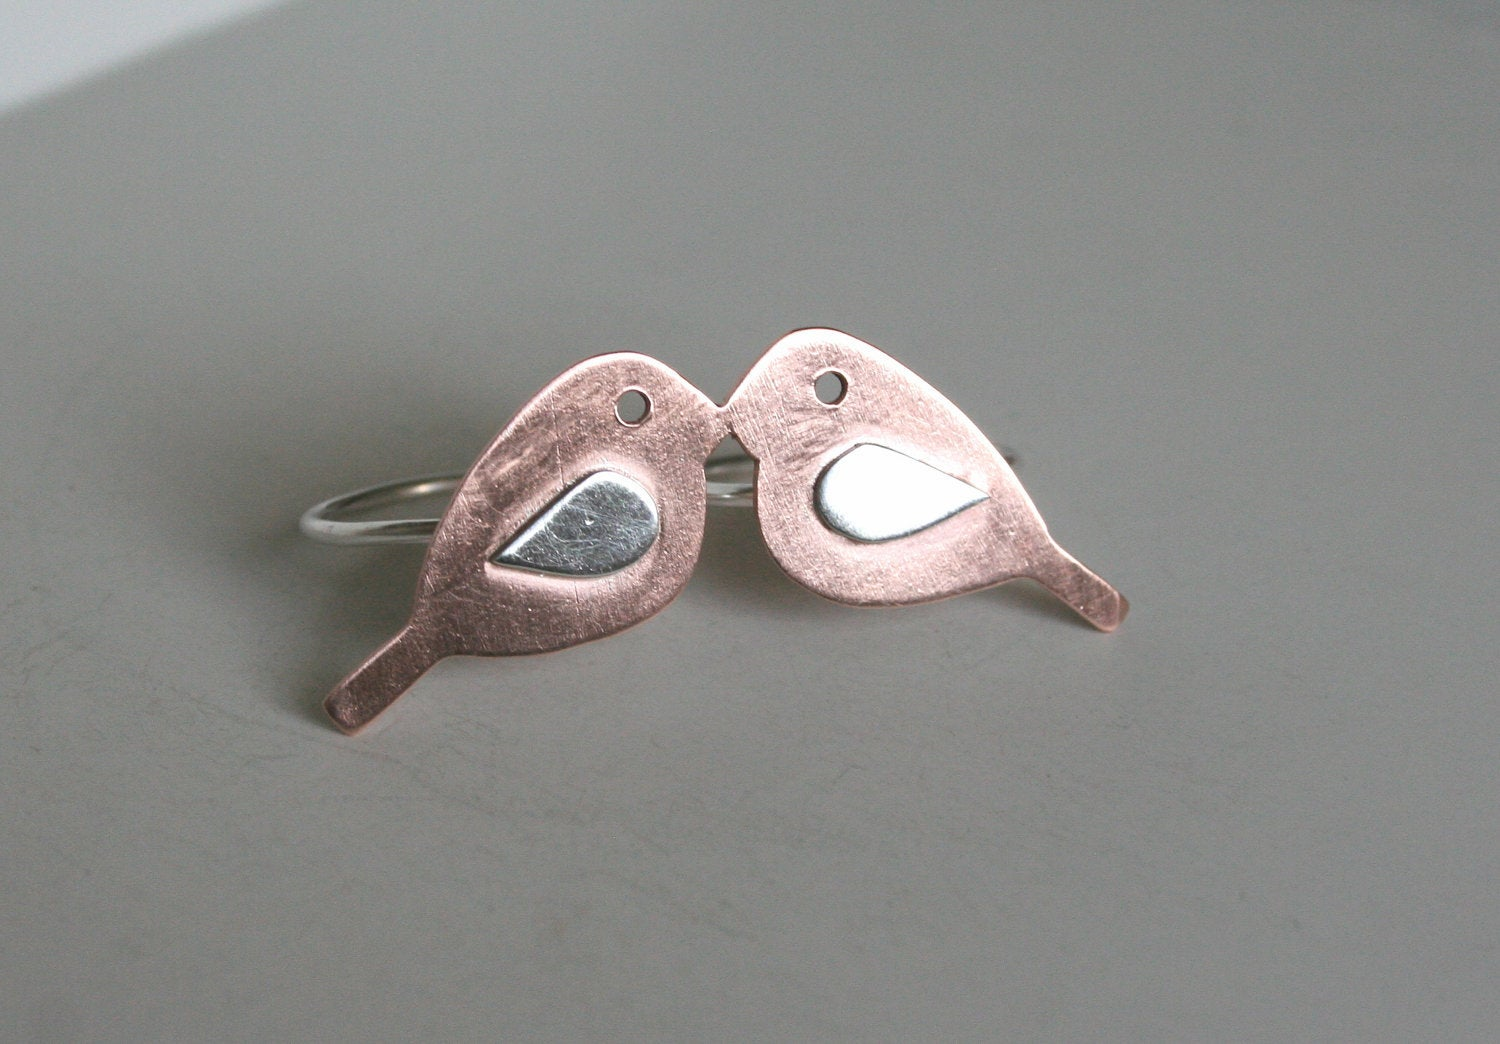 Love Birds Two Finger Metal Ring, Mixed Metal Ring, Love Birds, Bird Jewelry, Copper Birds, Double Finger Ring, Bird Silhouette, Silver RIng